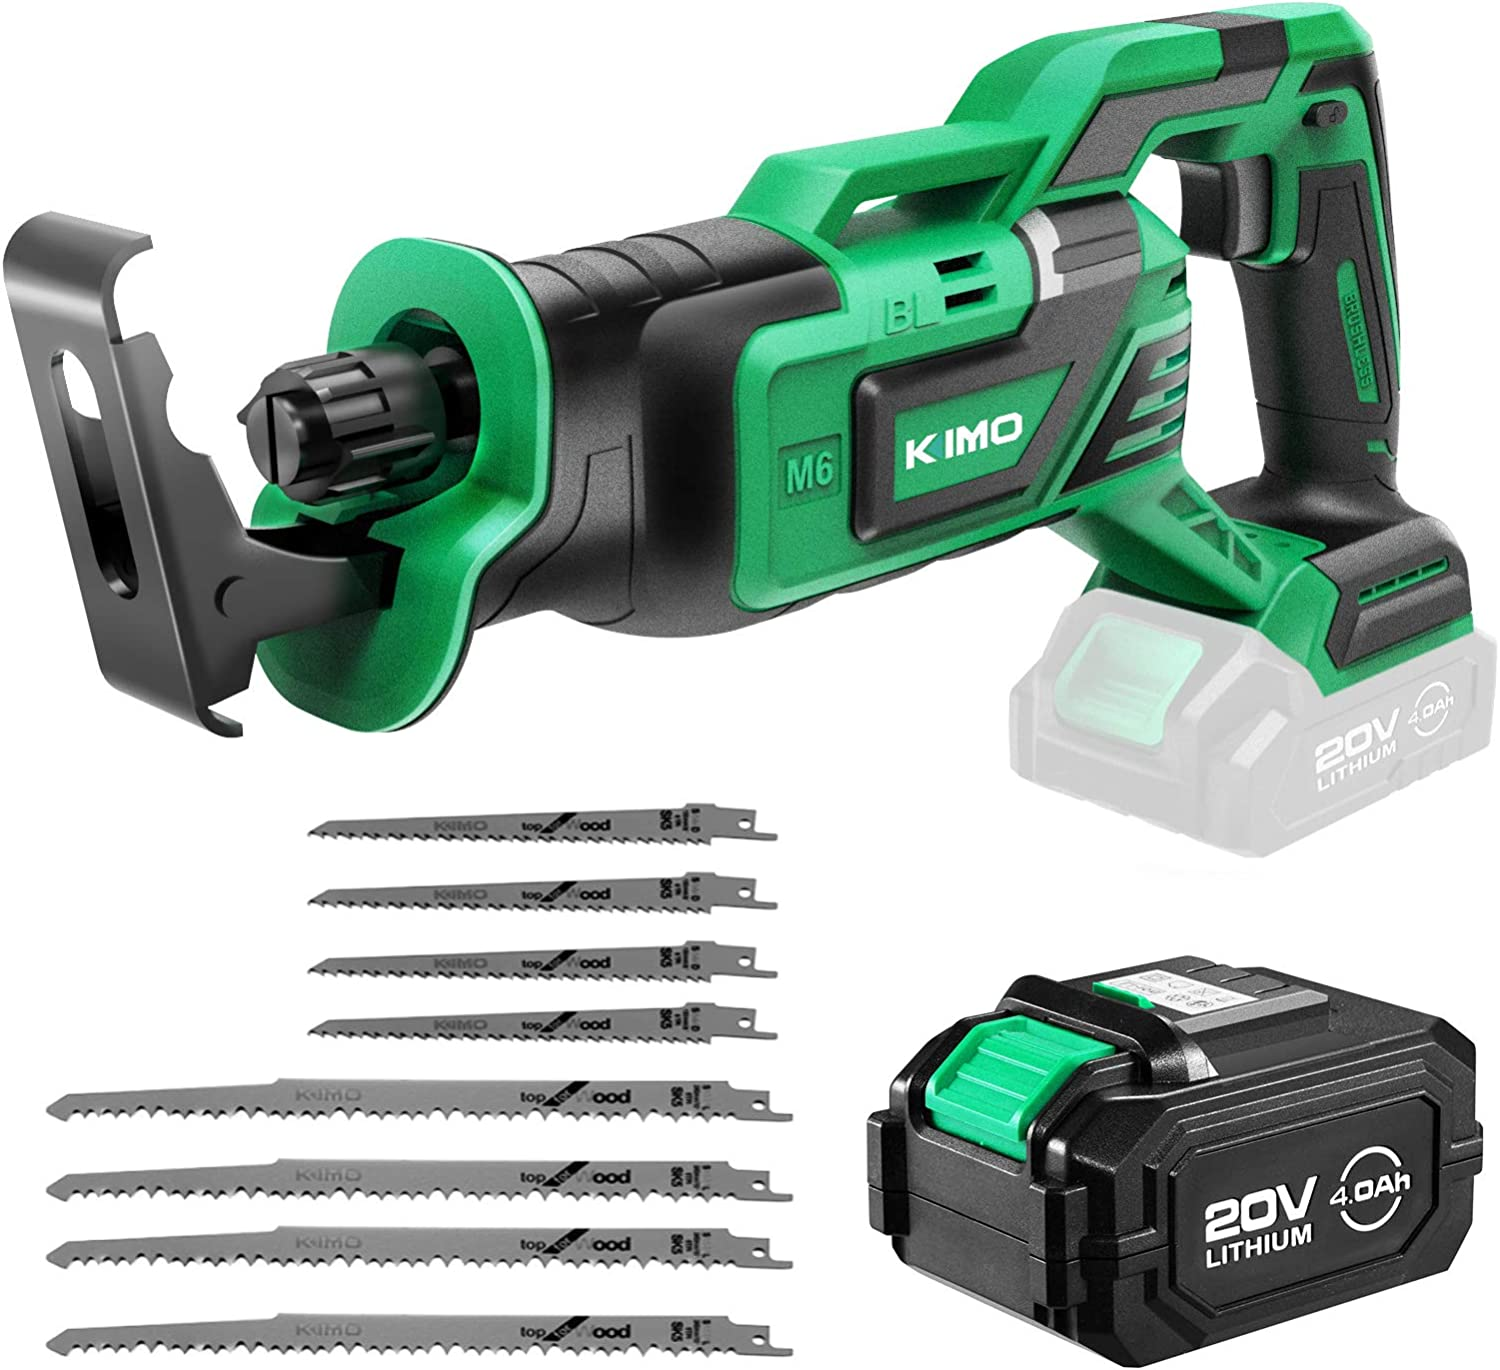 KIMO Brushless, Cordless Reciprocating Saw with Battery